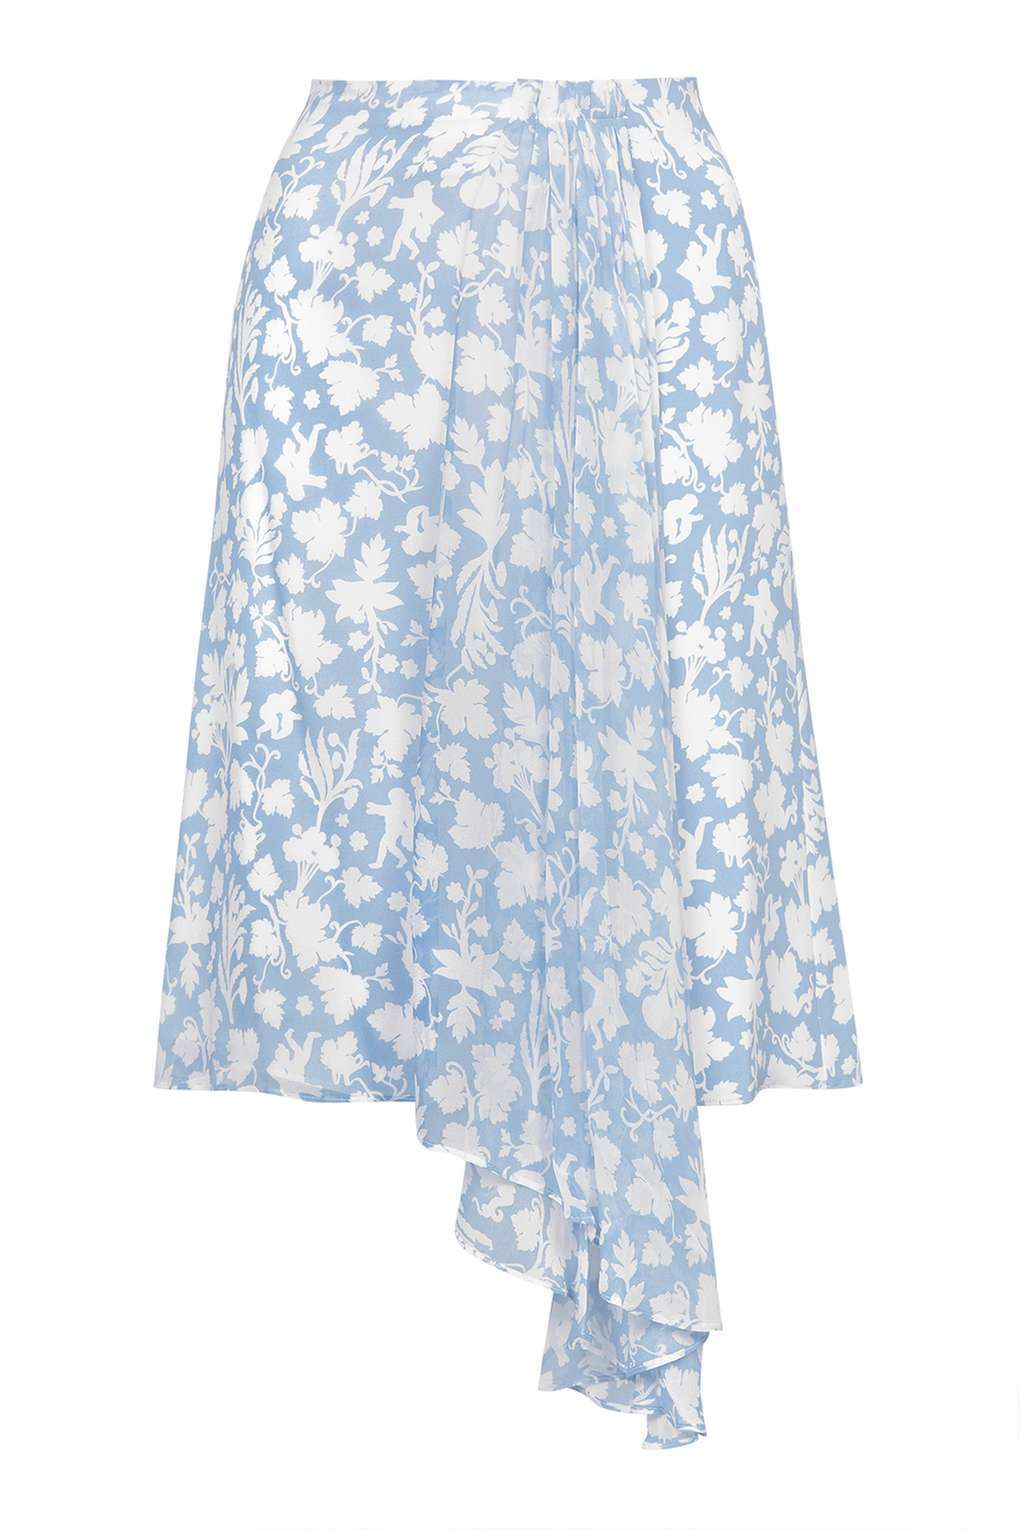 TOPSHOP Belfour Wedgwood Print Silk Skirt By Unique - bluee - UK12 EU40 RRP